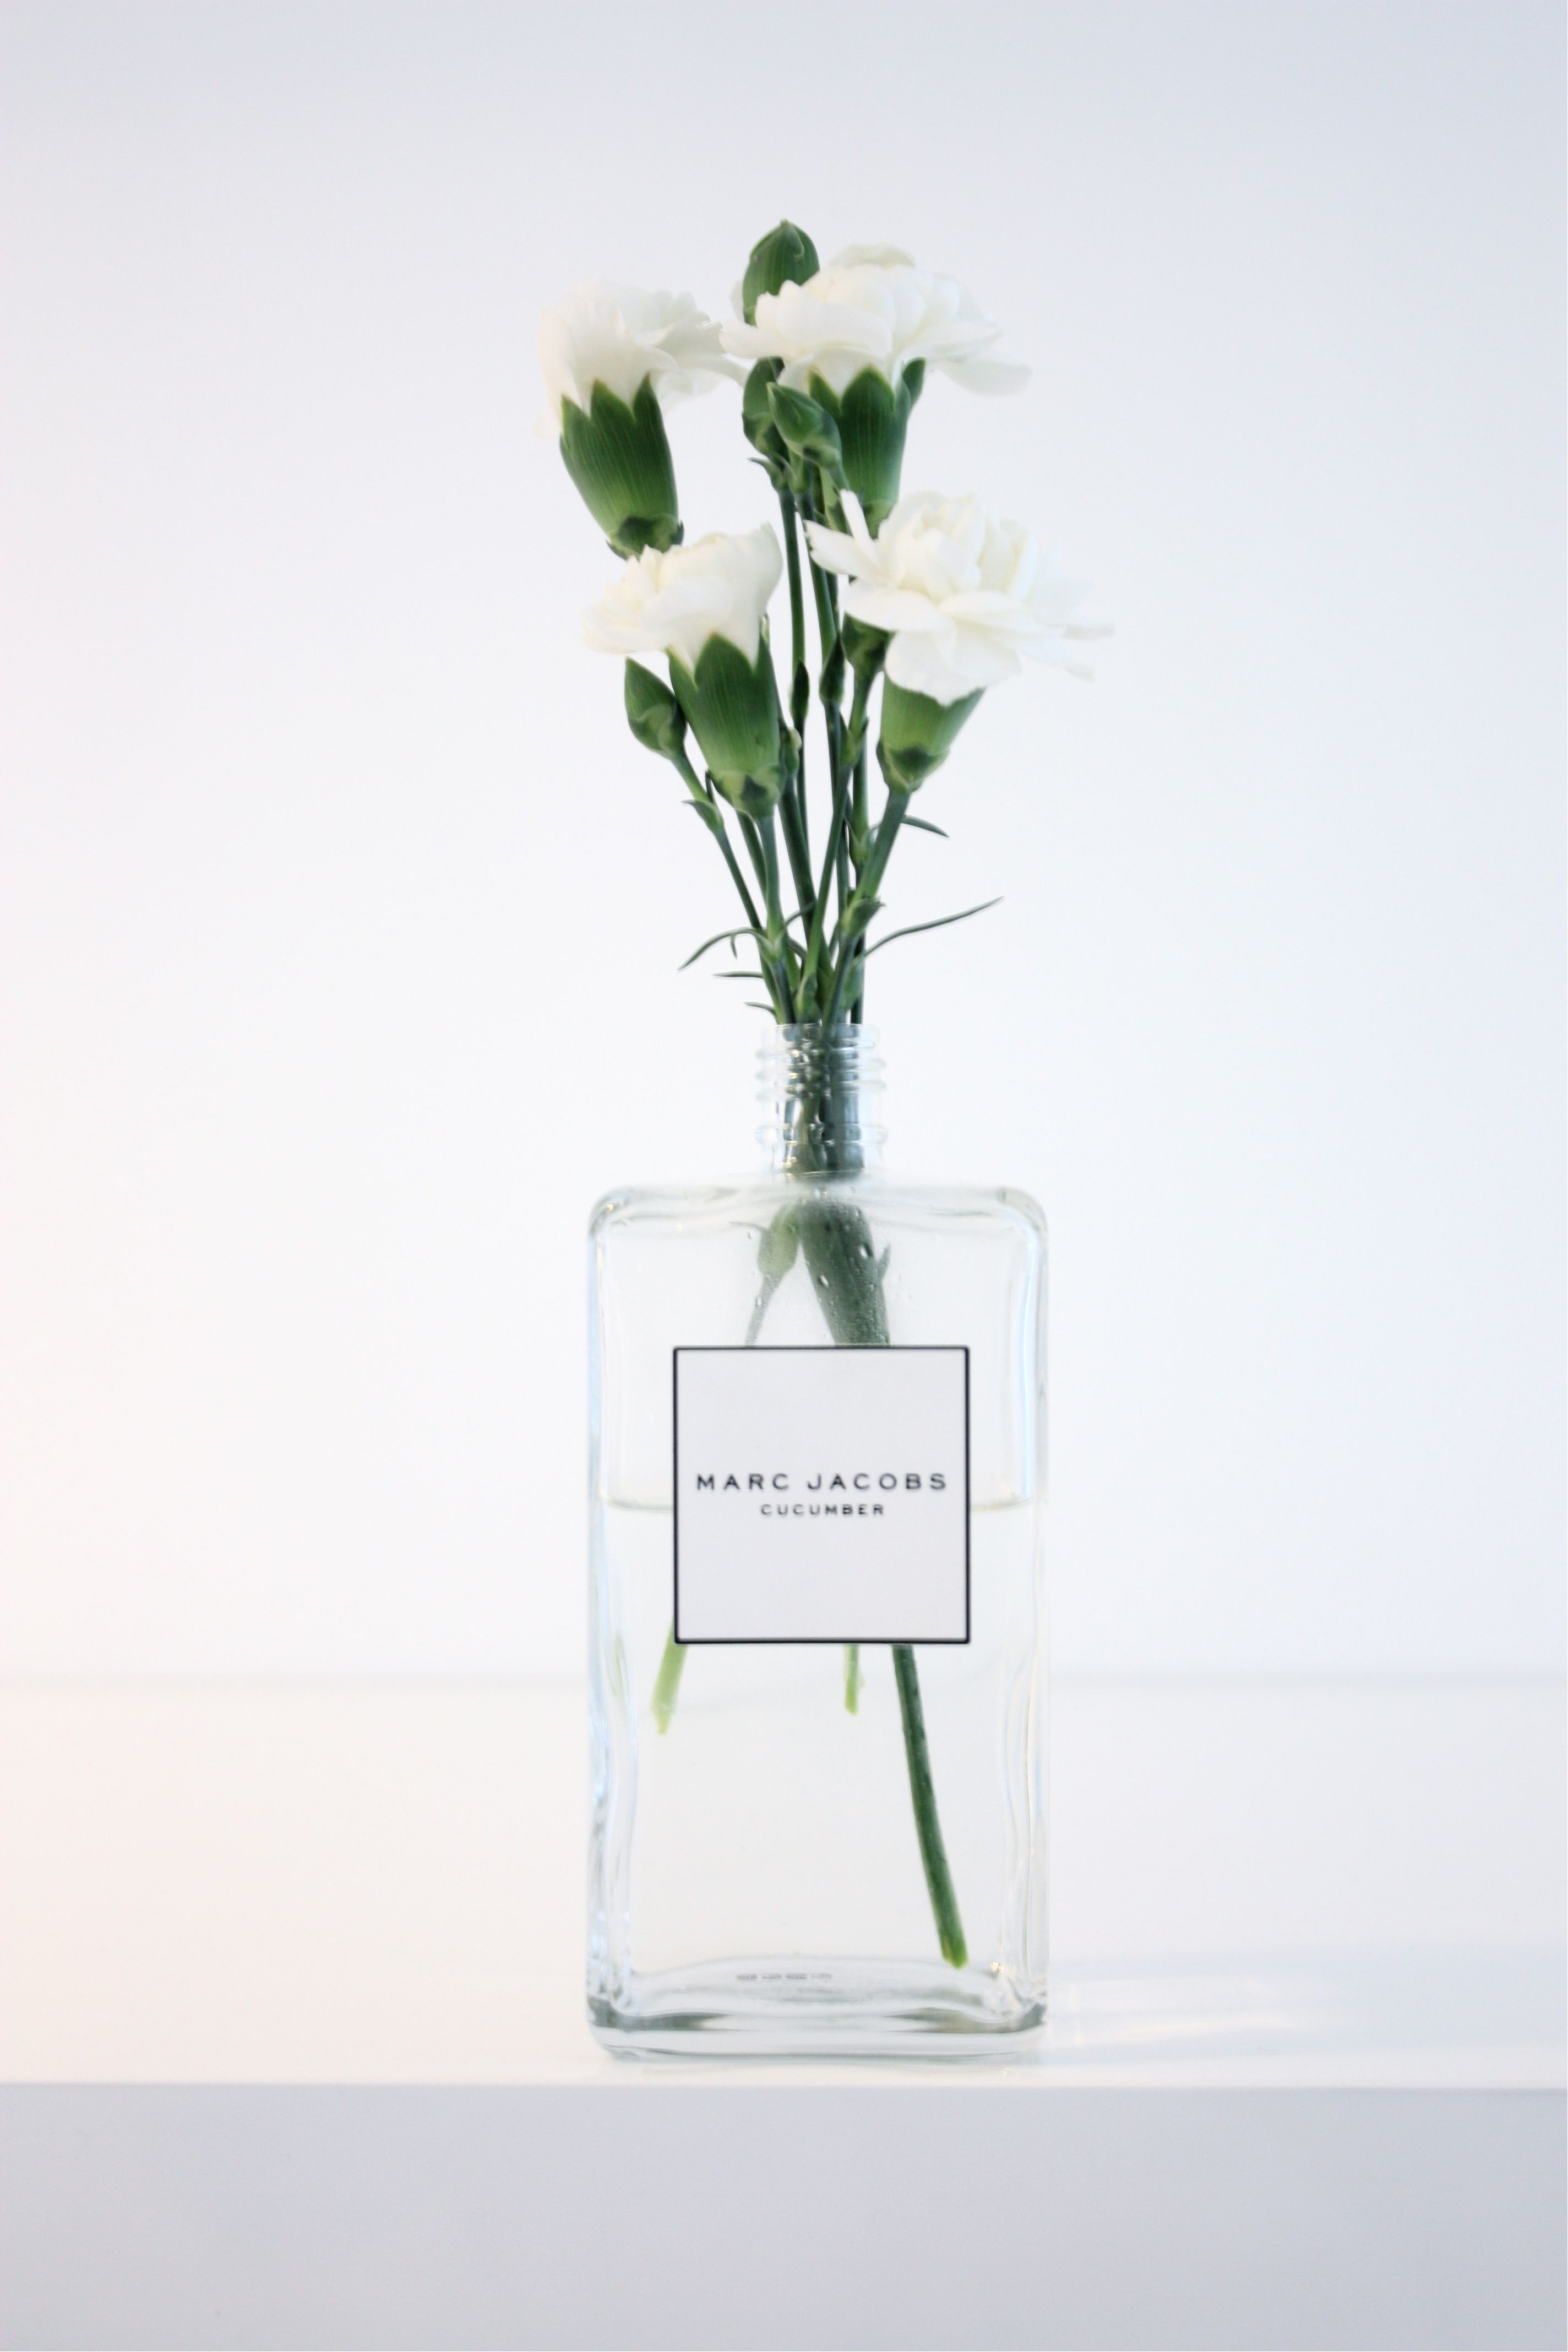 Homevialaura - Flowers In A Perfume Bottle - Marc Jacobs